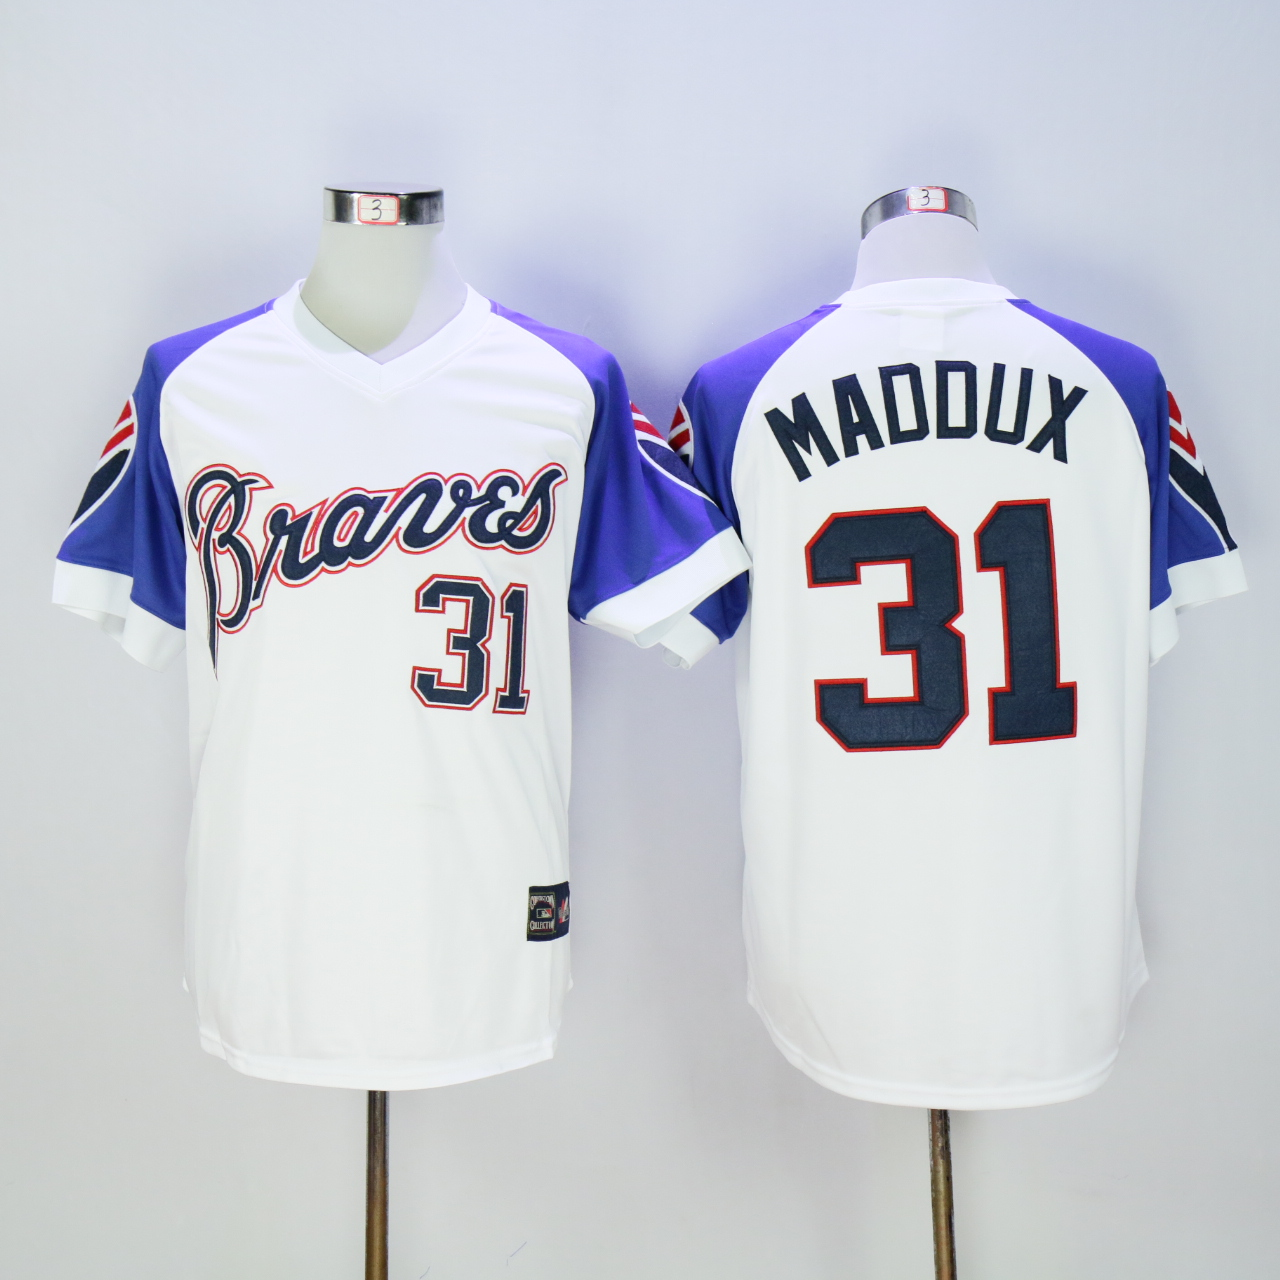 Men Atlanta Braves 31 Maddux White Throwback 1973 MLB Jerseys